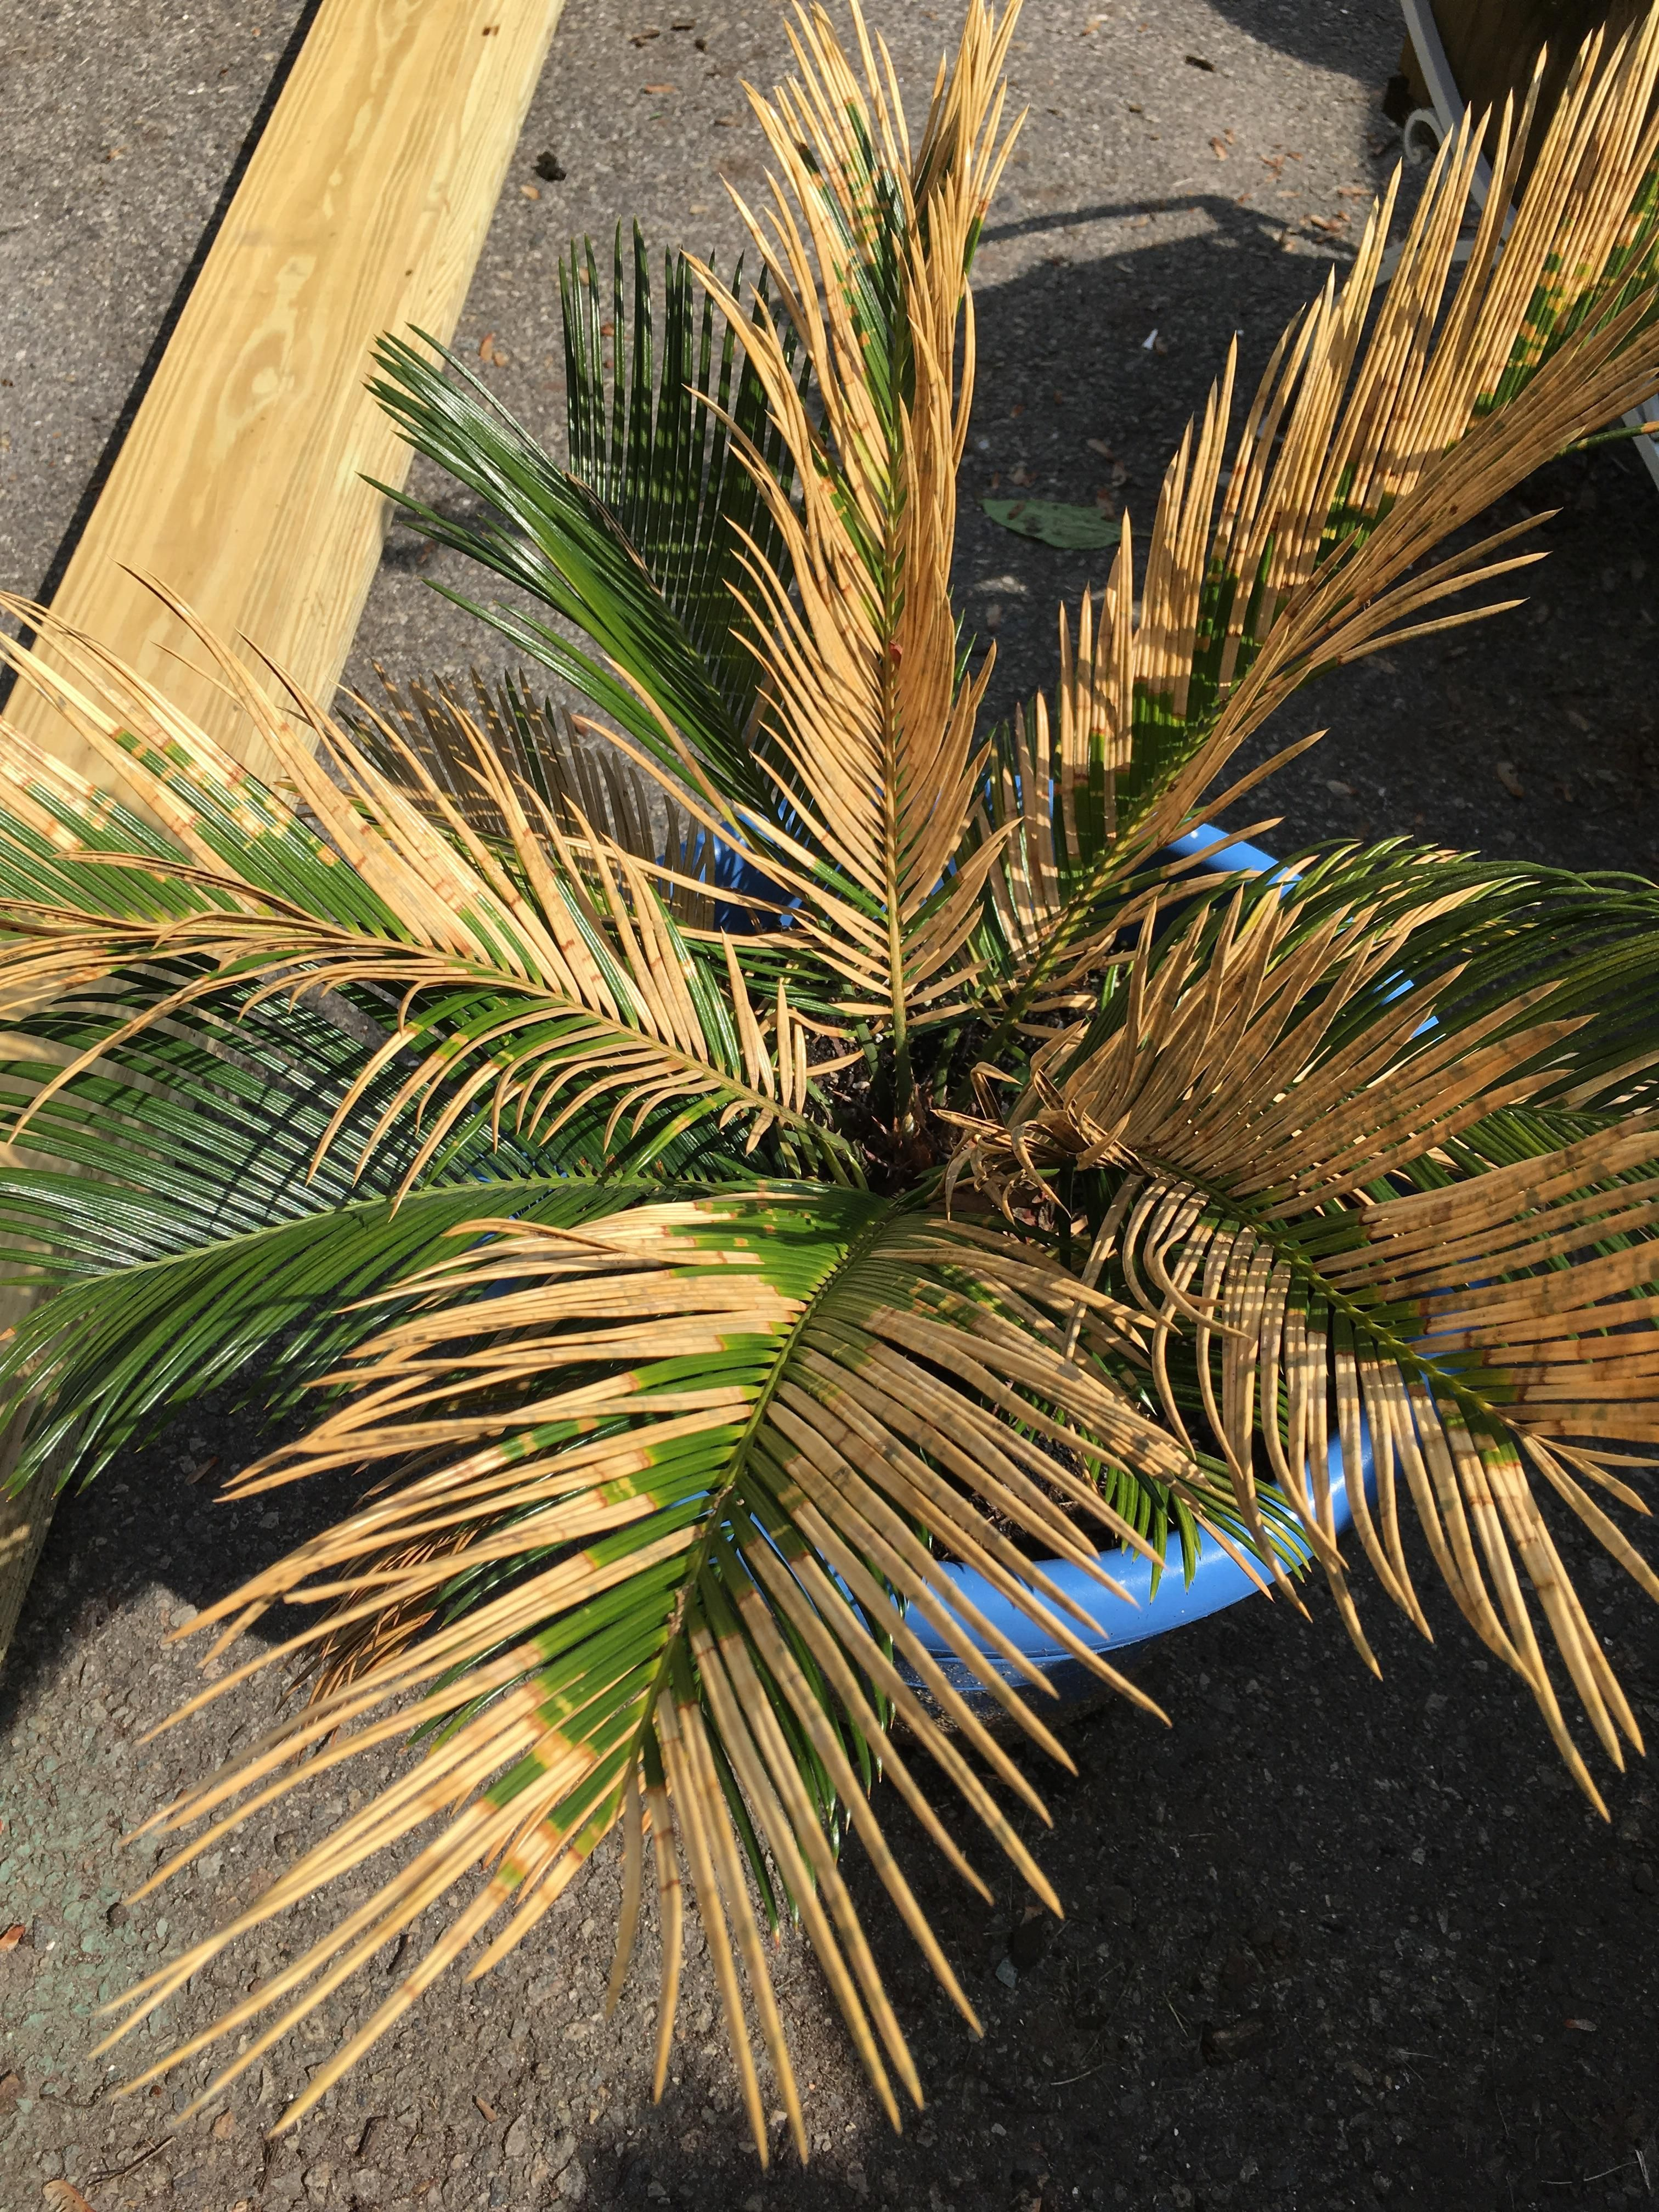 Whats Wrong With My Poor Sago Palm It Turned A Little Brown This Winter It Got Cold Before I Brought It Insid Sago Palm Palm Tree Care Palm Trees Landscaping